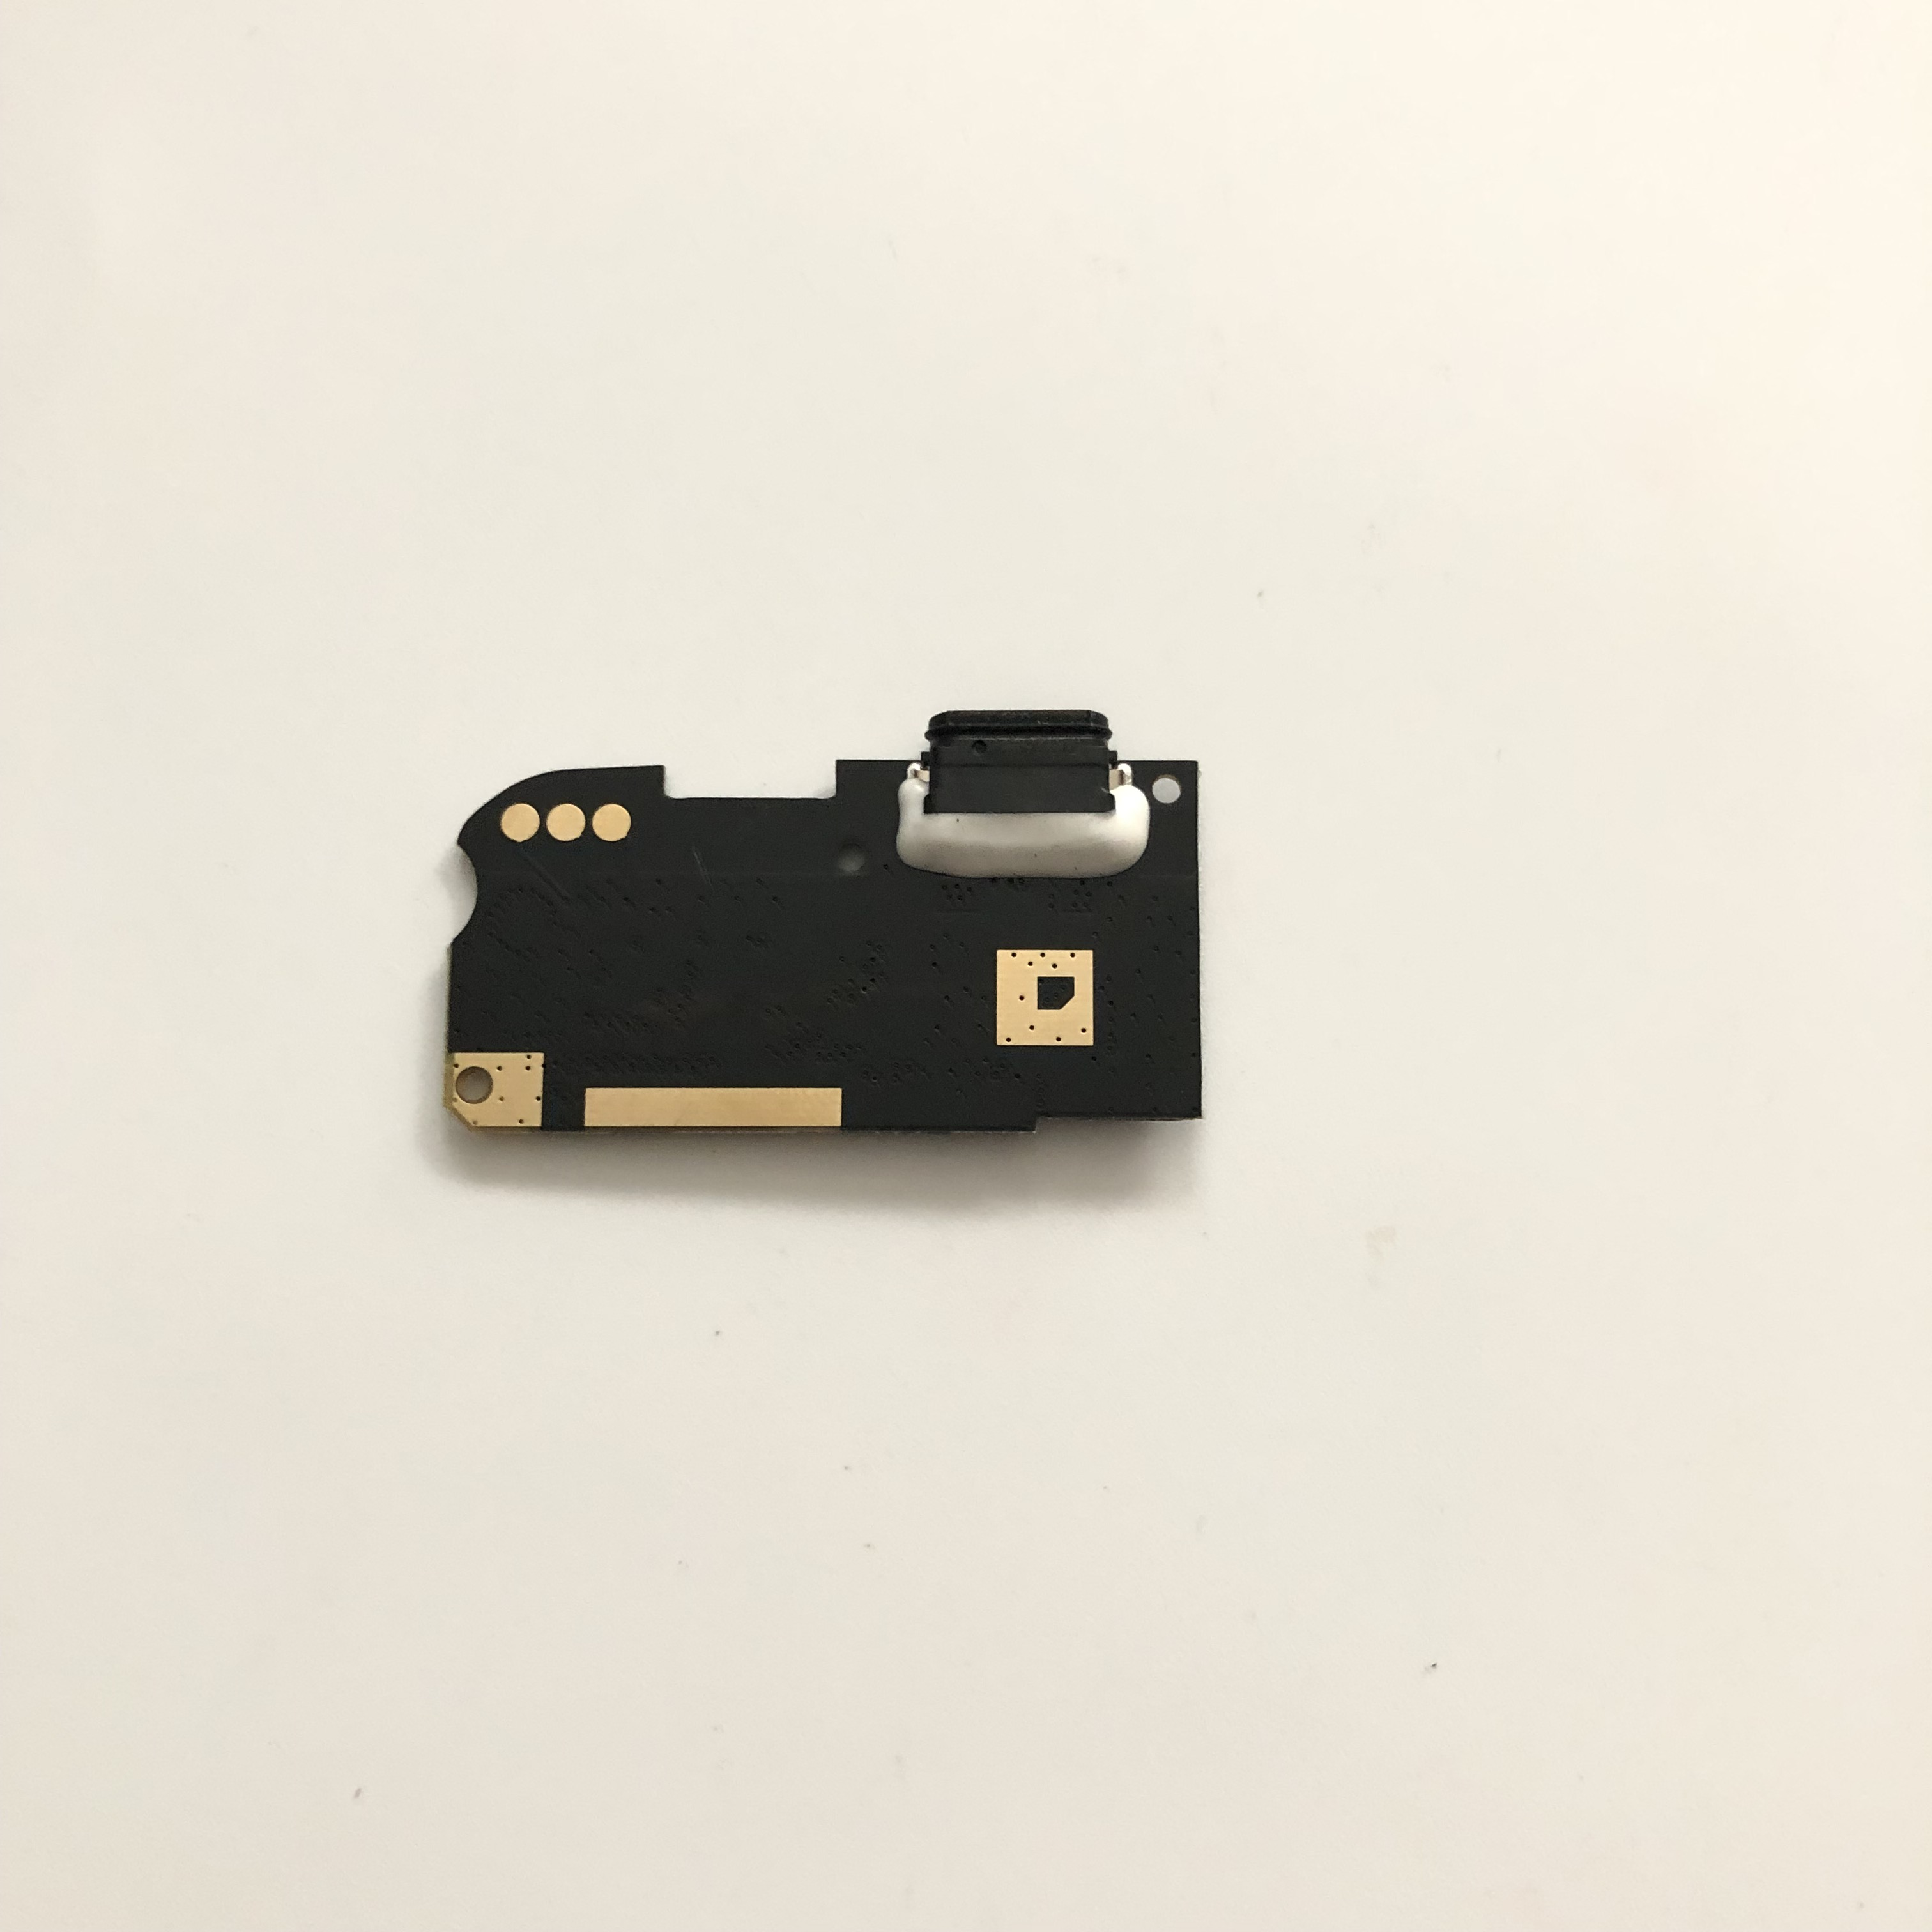 BLACKVIEW BV9500 New USB Plug Charge Board For BLACKVIEW BV9500 Pro MT6763T Octa Core 5 7 quot FHD Mobile Phone Tracking Number in Mobile Phone Flex Cables from Cellphones amp Telecommunications